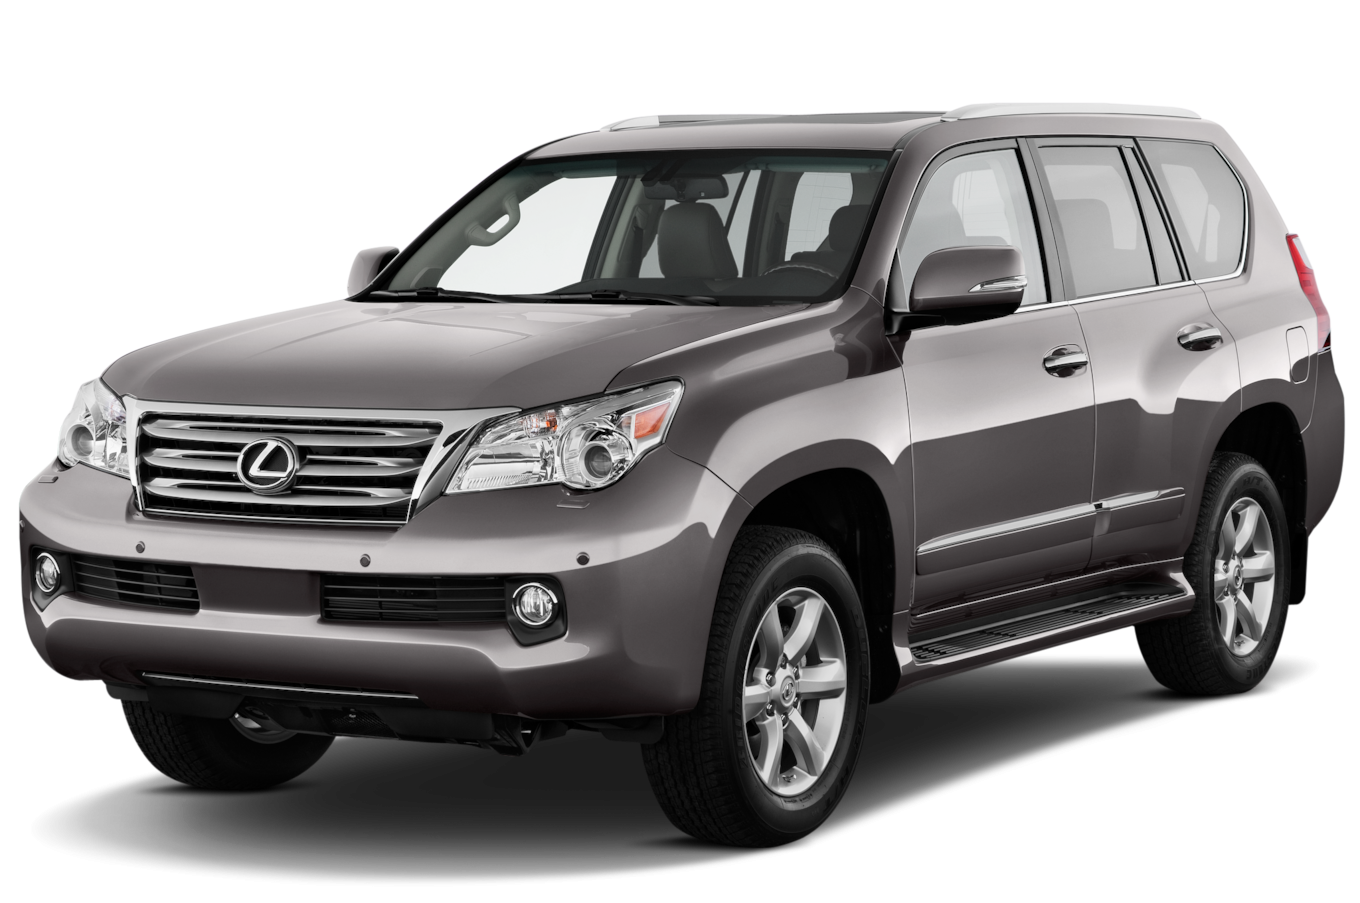 2011 Lexus GX 460 Owners Manual